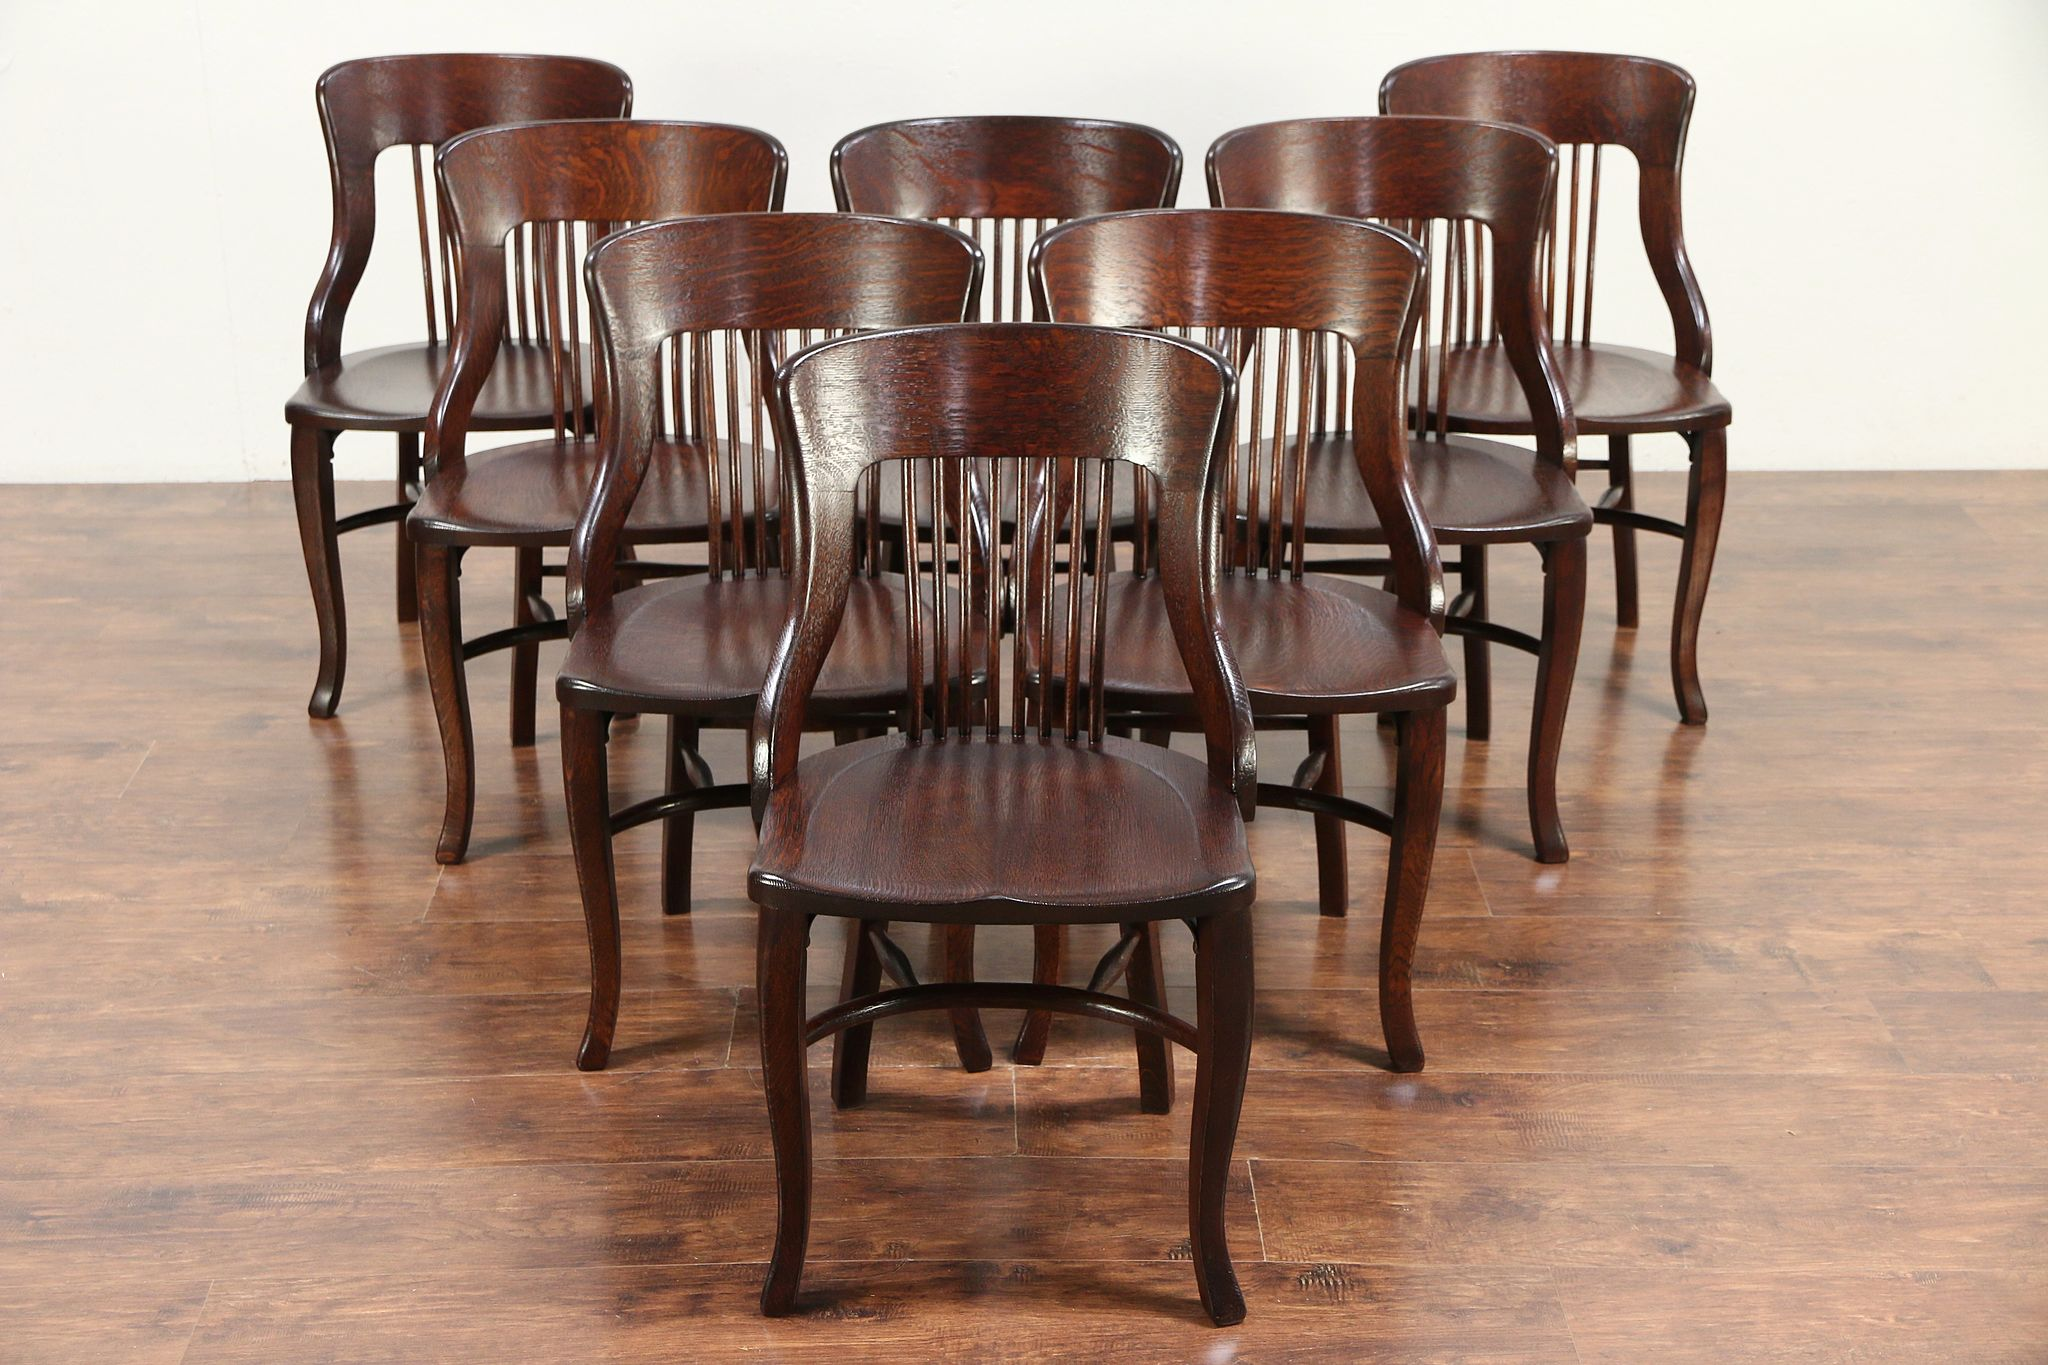 Heywood Wakefield Dining Chairs Set Of 8 Antique Quarter Sawn Oak Dining Chairs Heywood Wakefield Chicago 29794